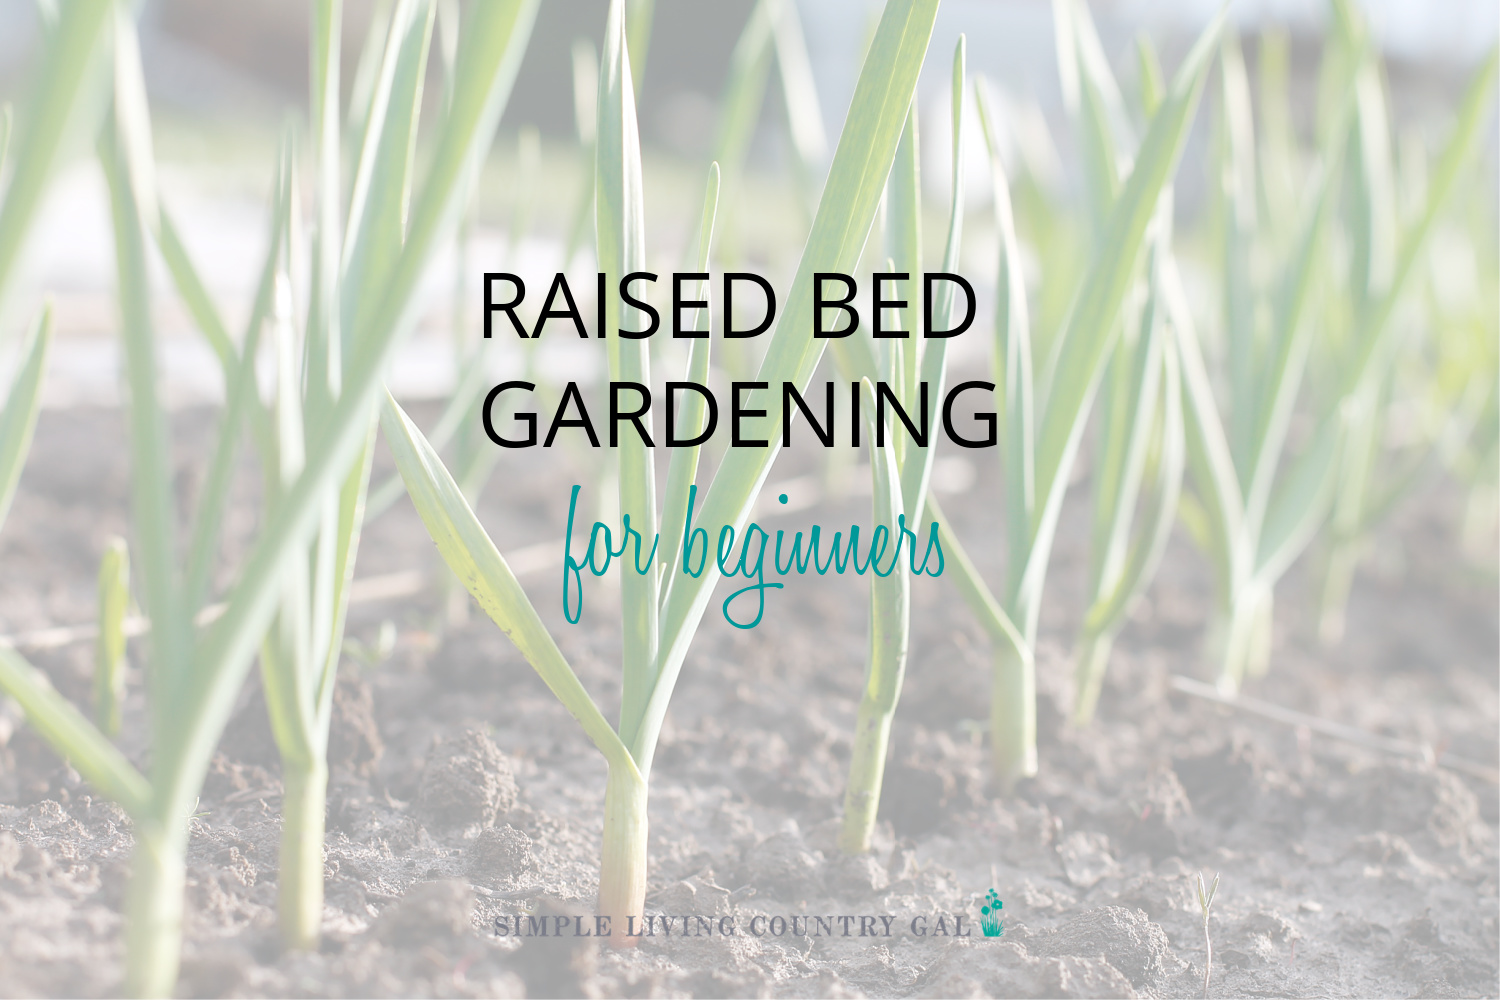 Square Foot Gardening for Beginners